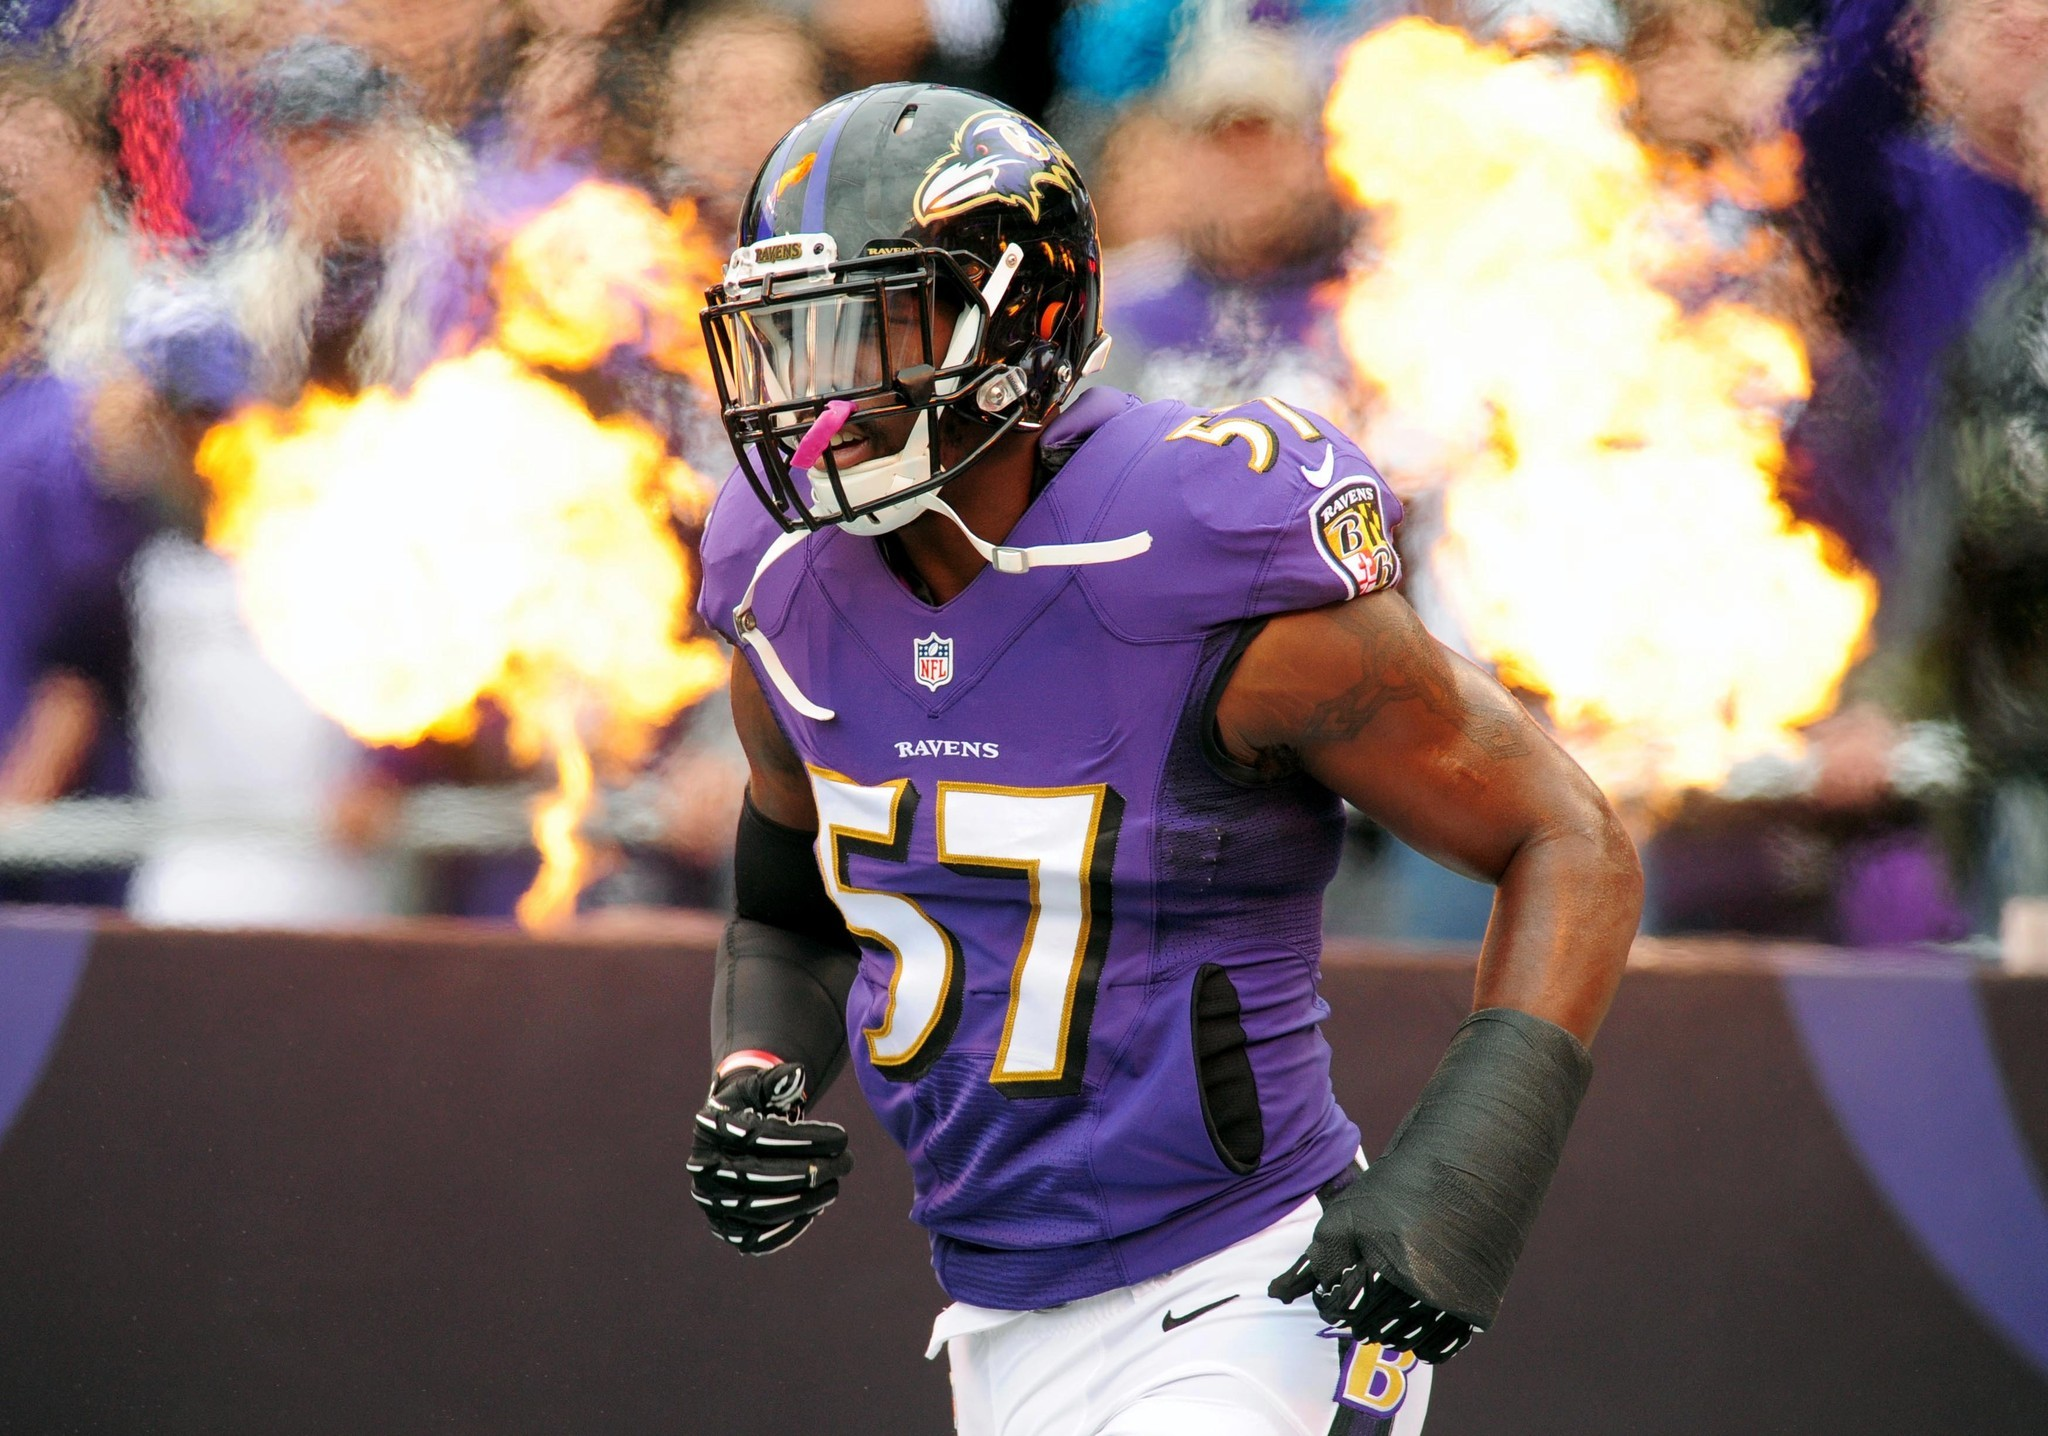 Baltimore Ravens second year linebacker C J Mosley has his